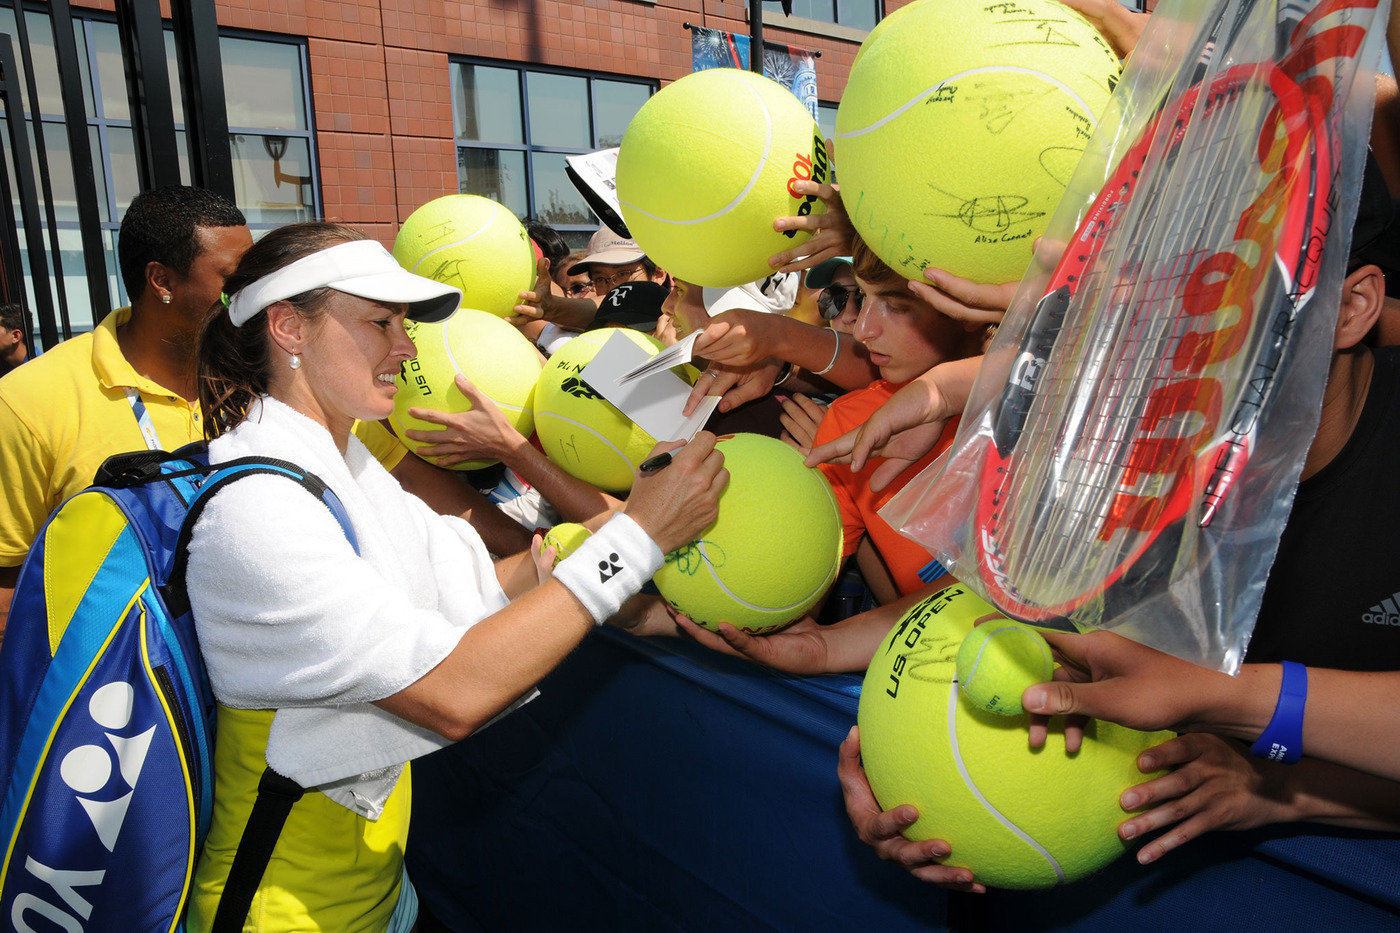 Martina Hingis signs autographs for fans at the 2014 US Open. - Photo Credit: Mike Lawrence/usopen.org